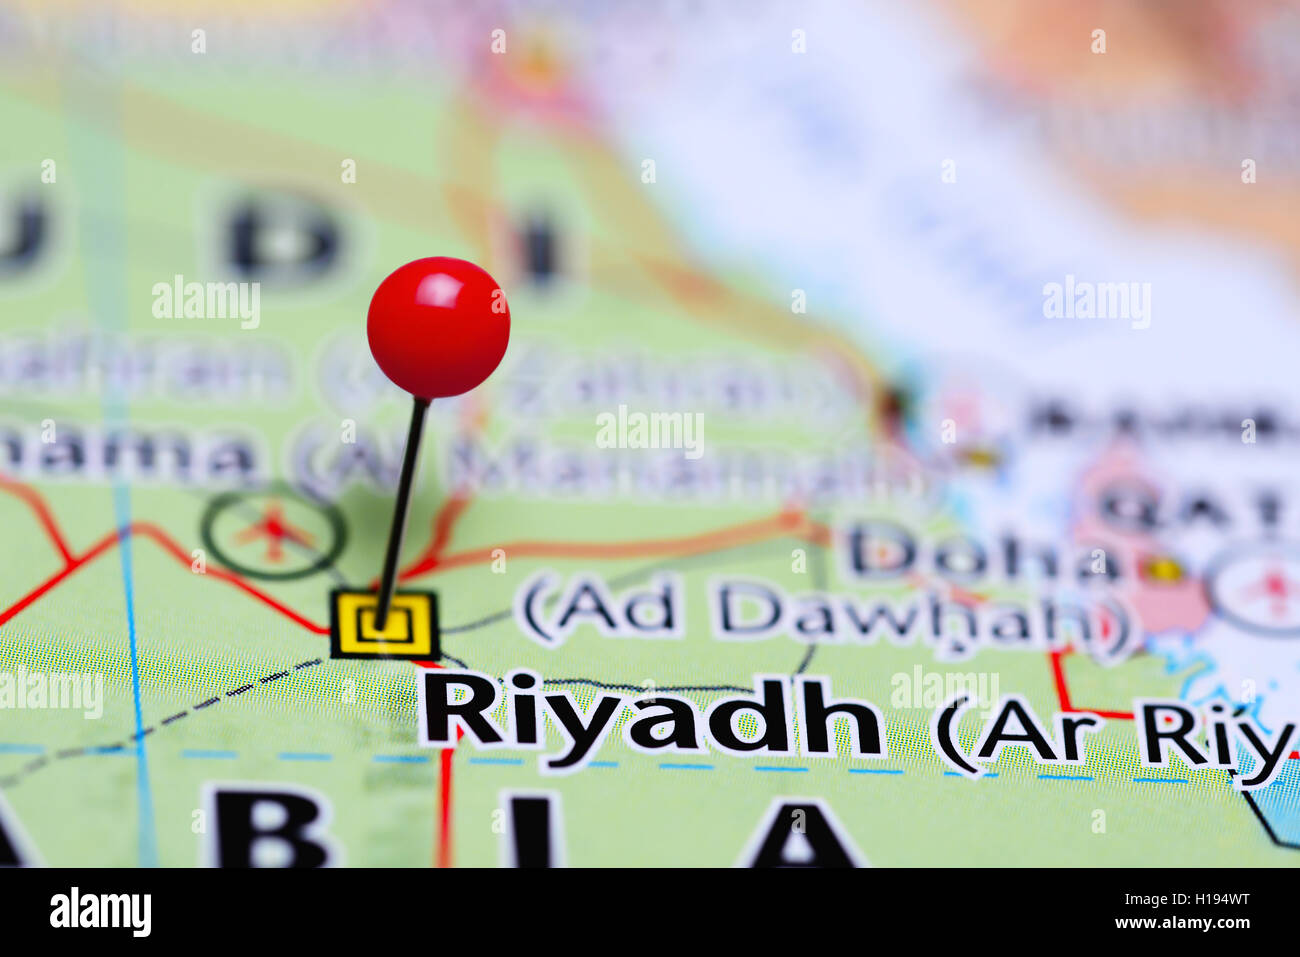 Marked Map Of Riyadh Saudi Arabia on map of pretoria south africa, map of mecca and medina, map of cairo egypt, map of tehran iran, map of kabul afghanistan, map of mexico city mexico, map of johannesburg south africa, map of durban south africa, map of phnom penh cambodia, map of santiago chile, map of madrid spain, map of bogota colombia, map of buenos aires argentina, map of quito ecuador, map of perth australia, map of nairobi kenya, map of wellington new zealand, map of shanghai china, map of hanoi vietnam, map of damascus syria,